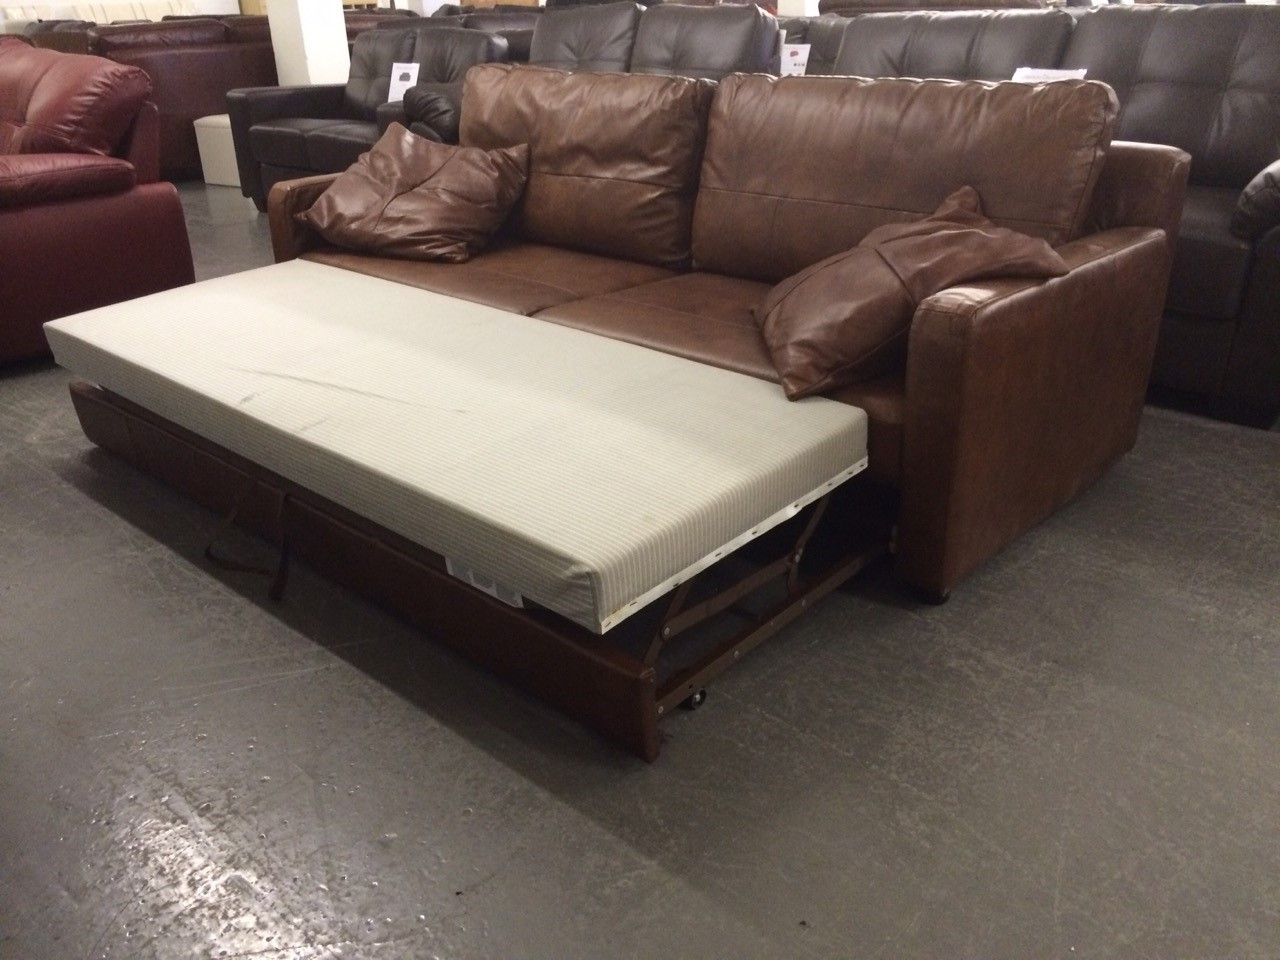 Bbx uk sale aniline leather sofa bed by neumann leathers for Sofa bed uk sale